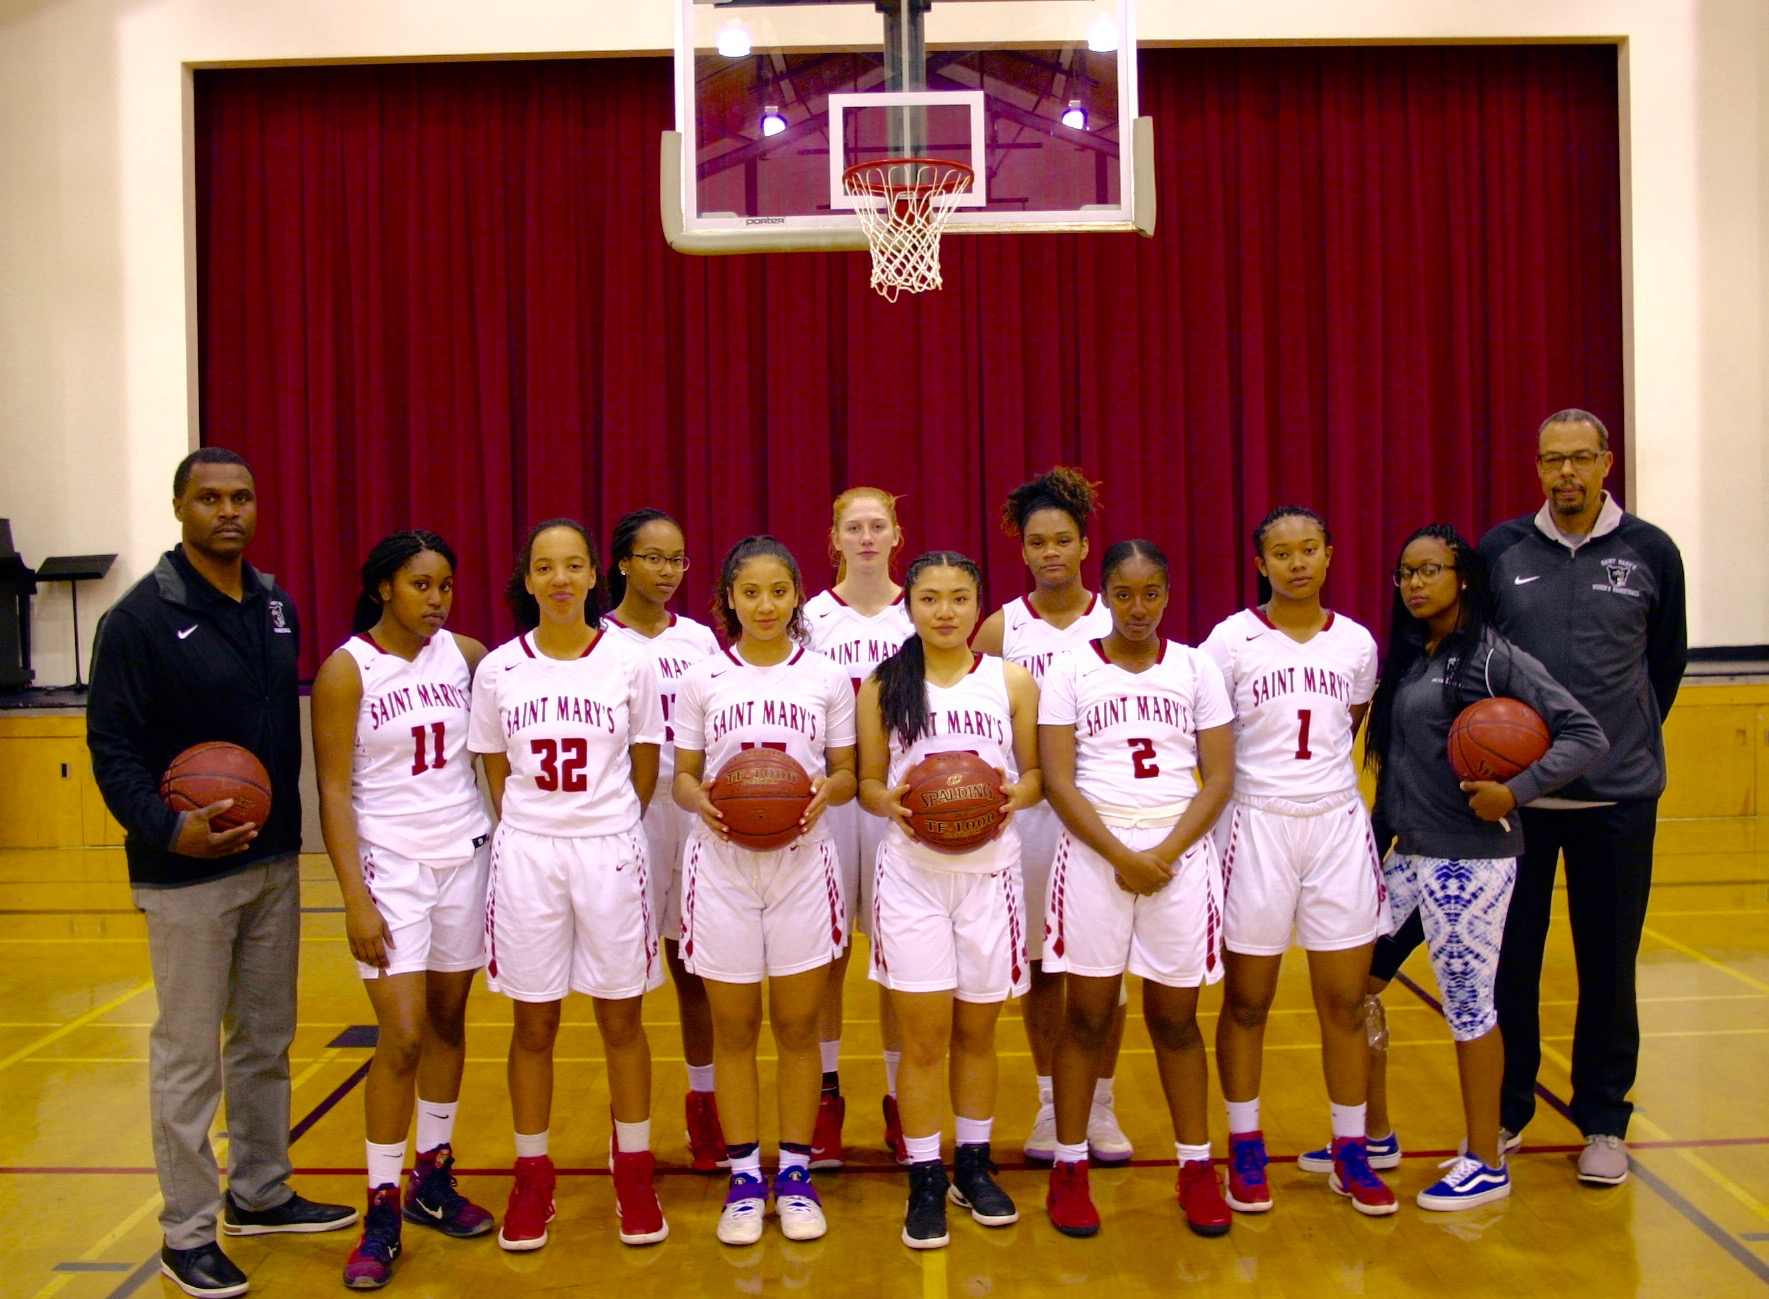 Girl's Basktball Team Photo